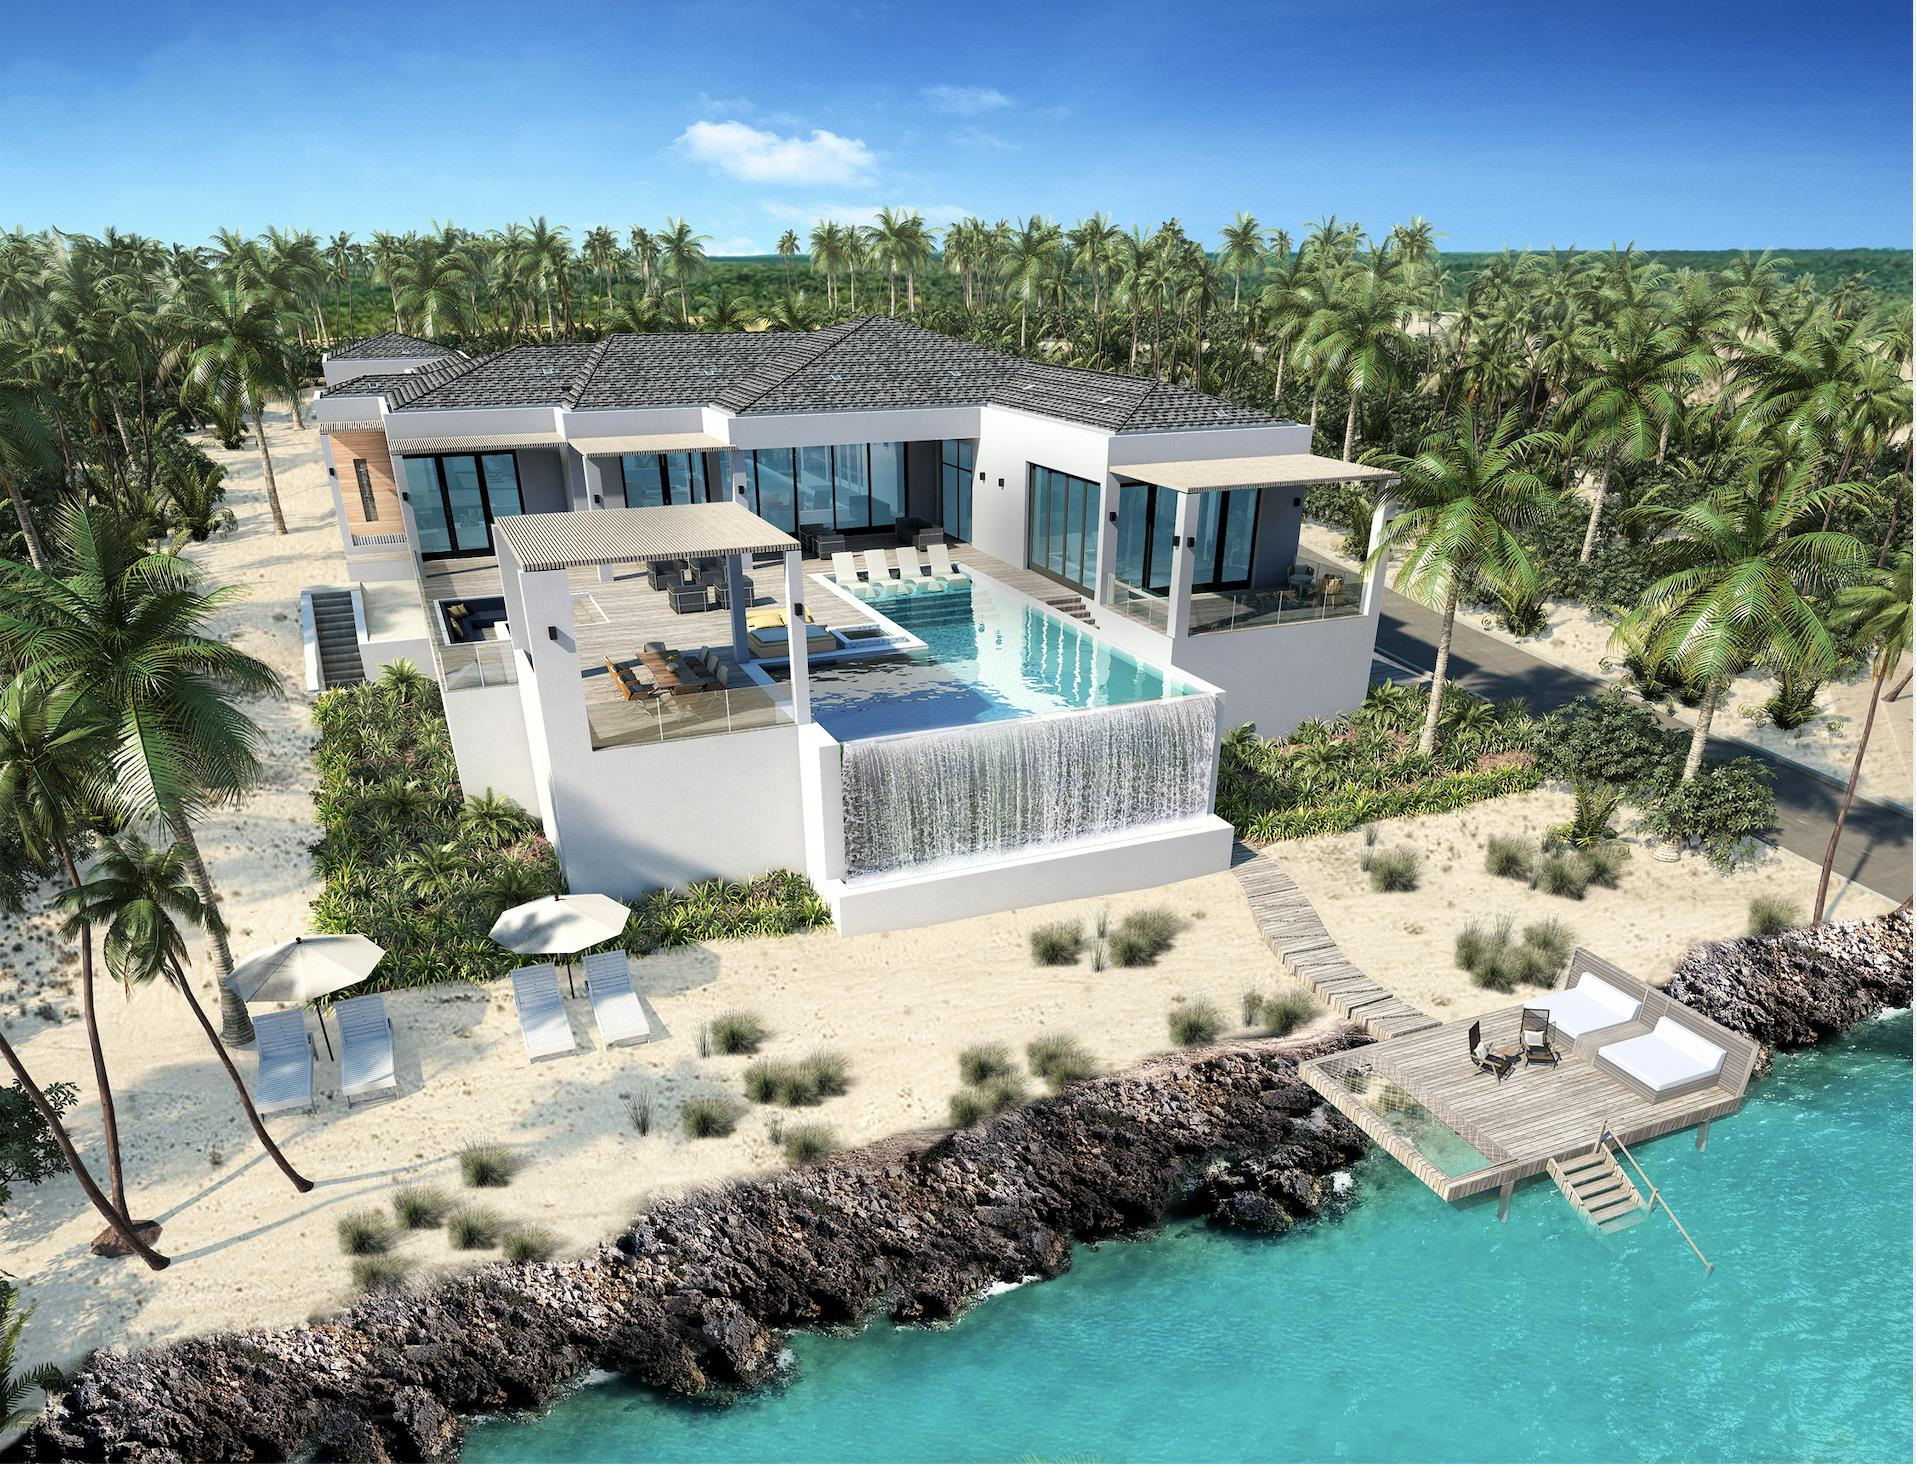 Turks And Caicos Islands Real Estate And Apartments For